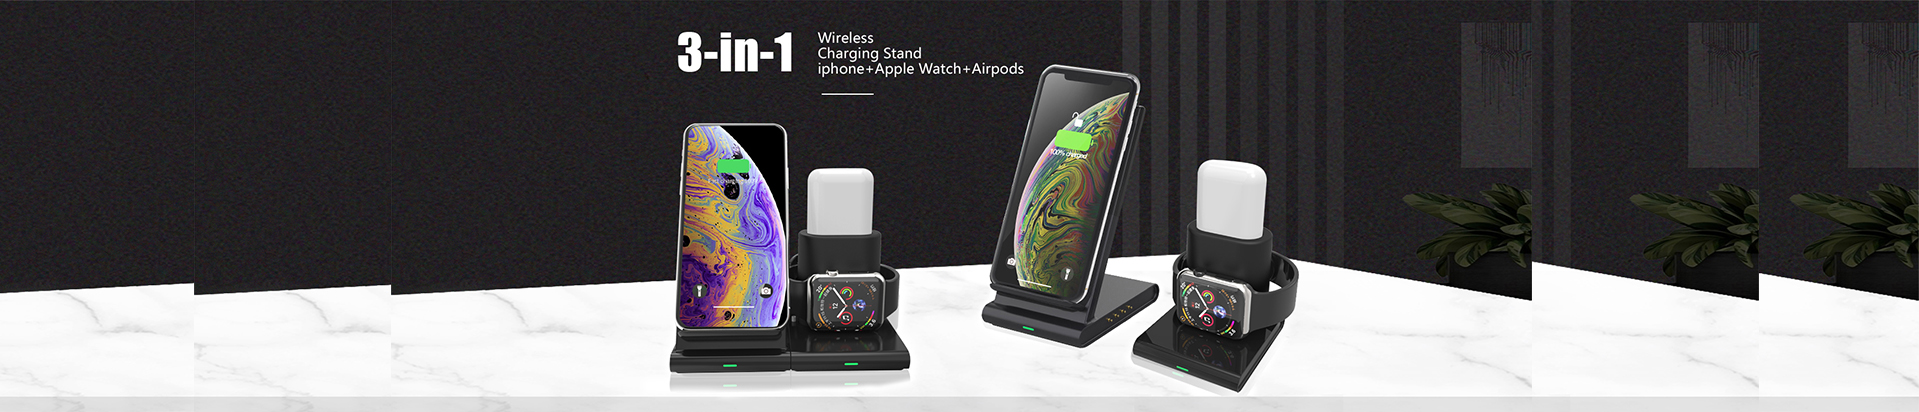 S210 wireless charger with clock (2)